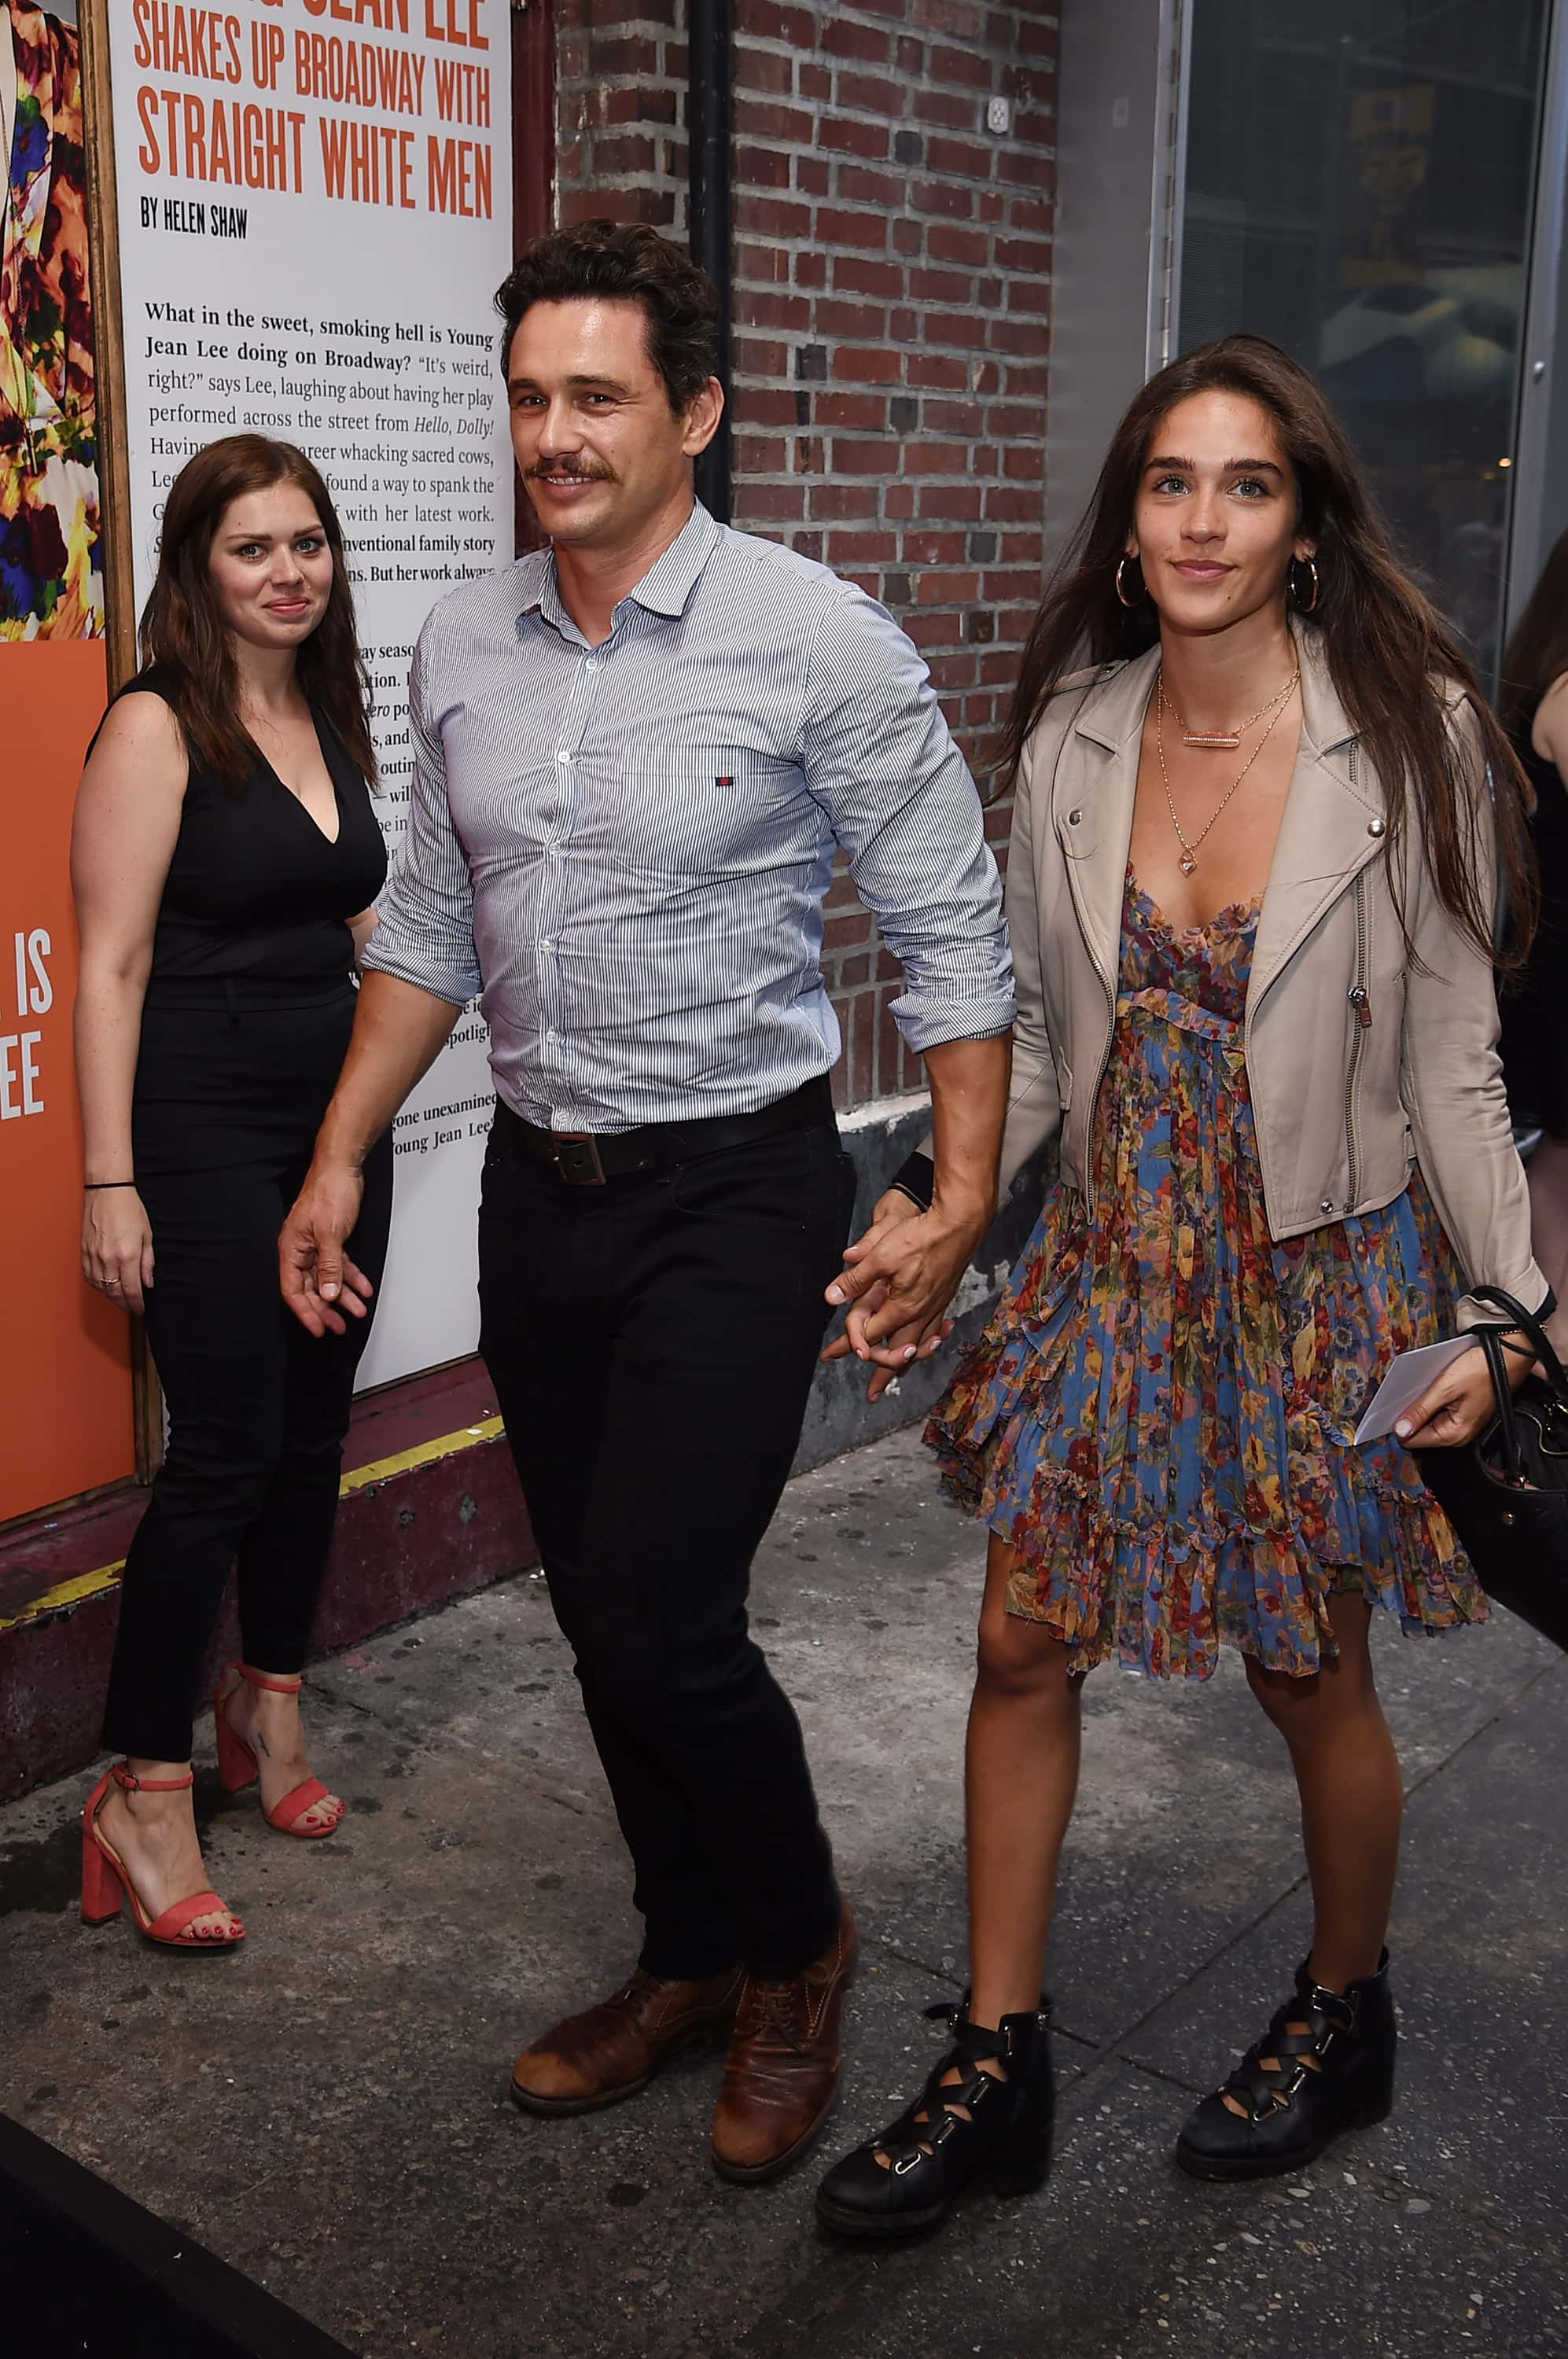 James Franco hits the red carpet with girlfriend in his ...